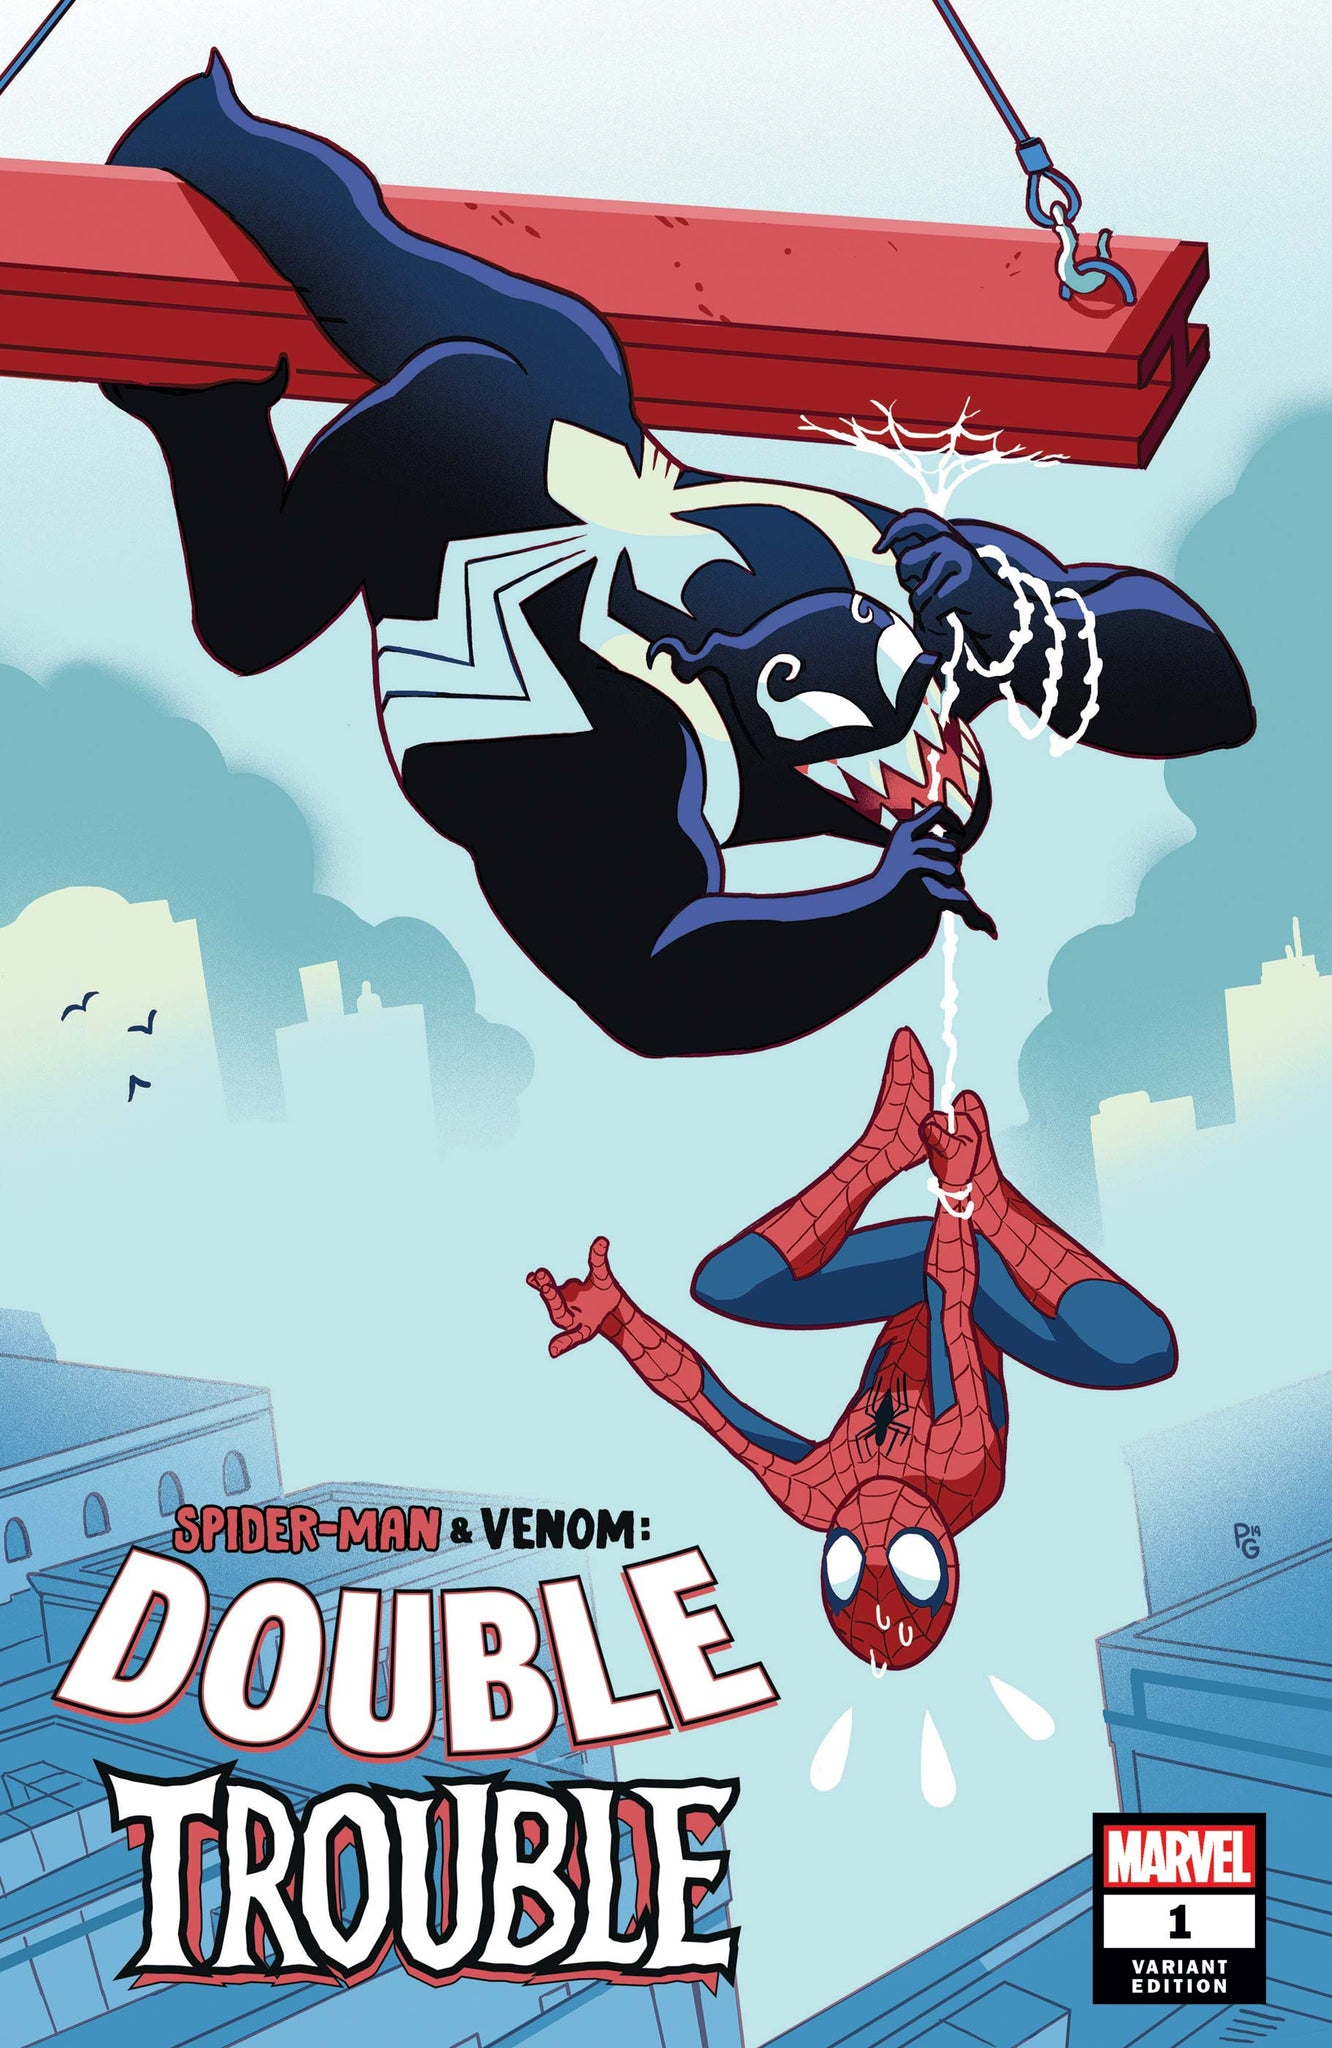 Spider-Man & Vemon Double Trouble #1